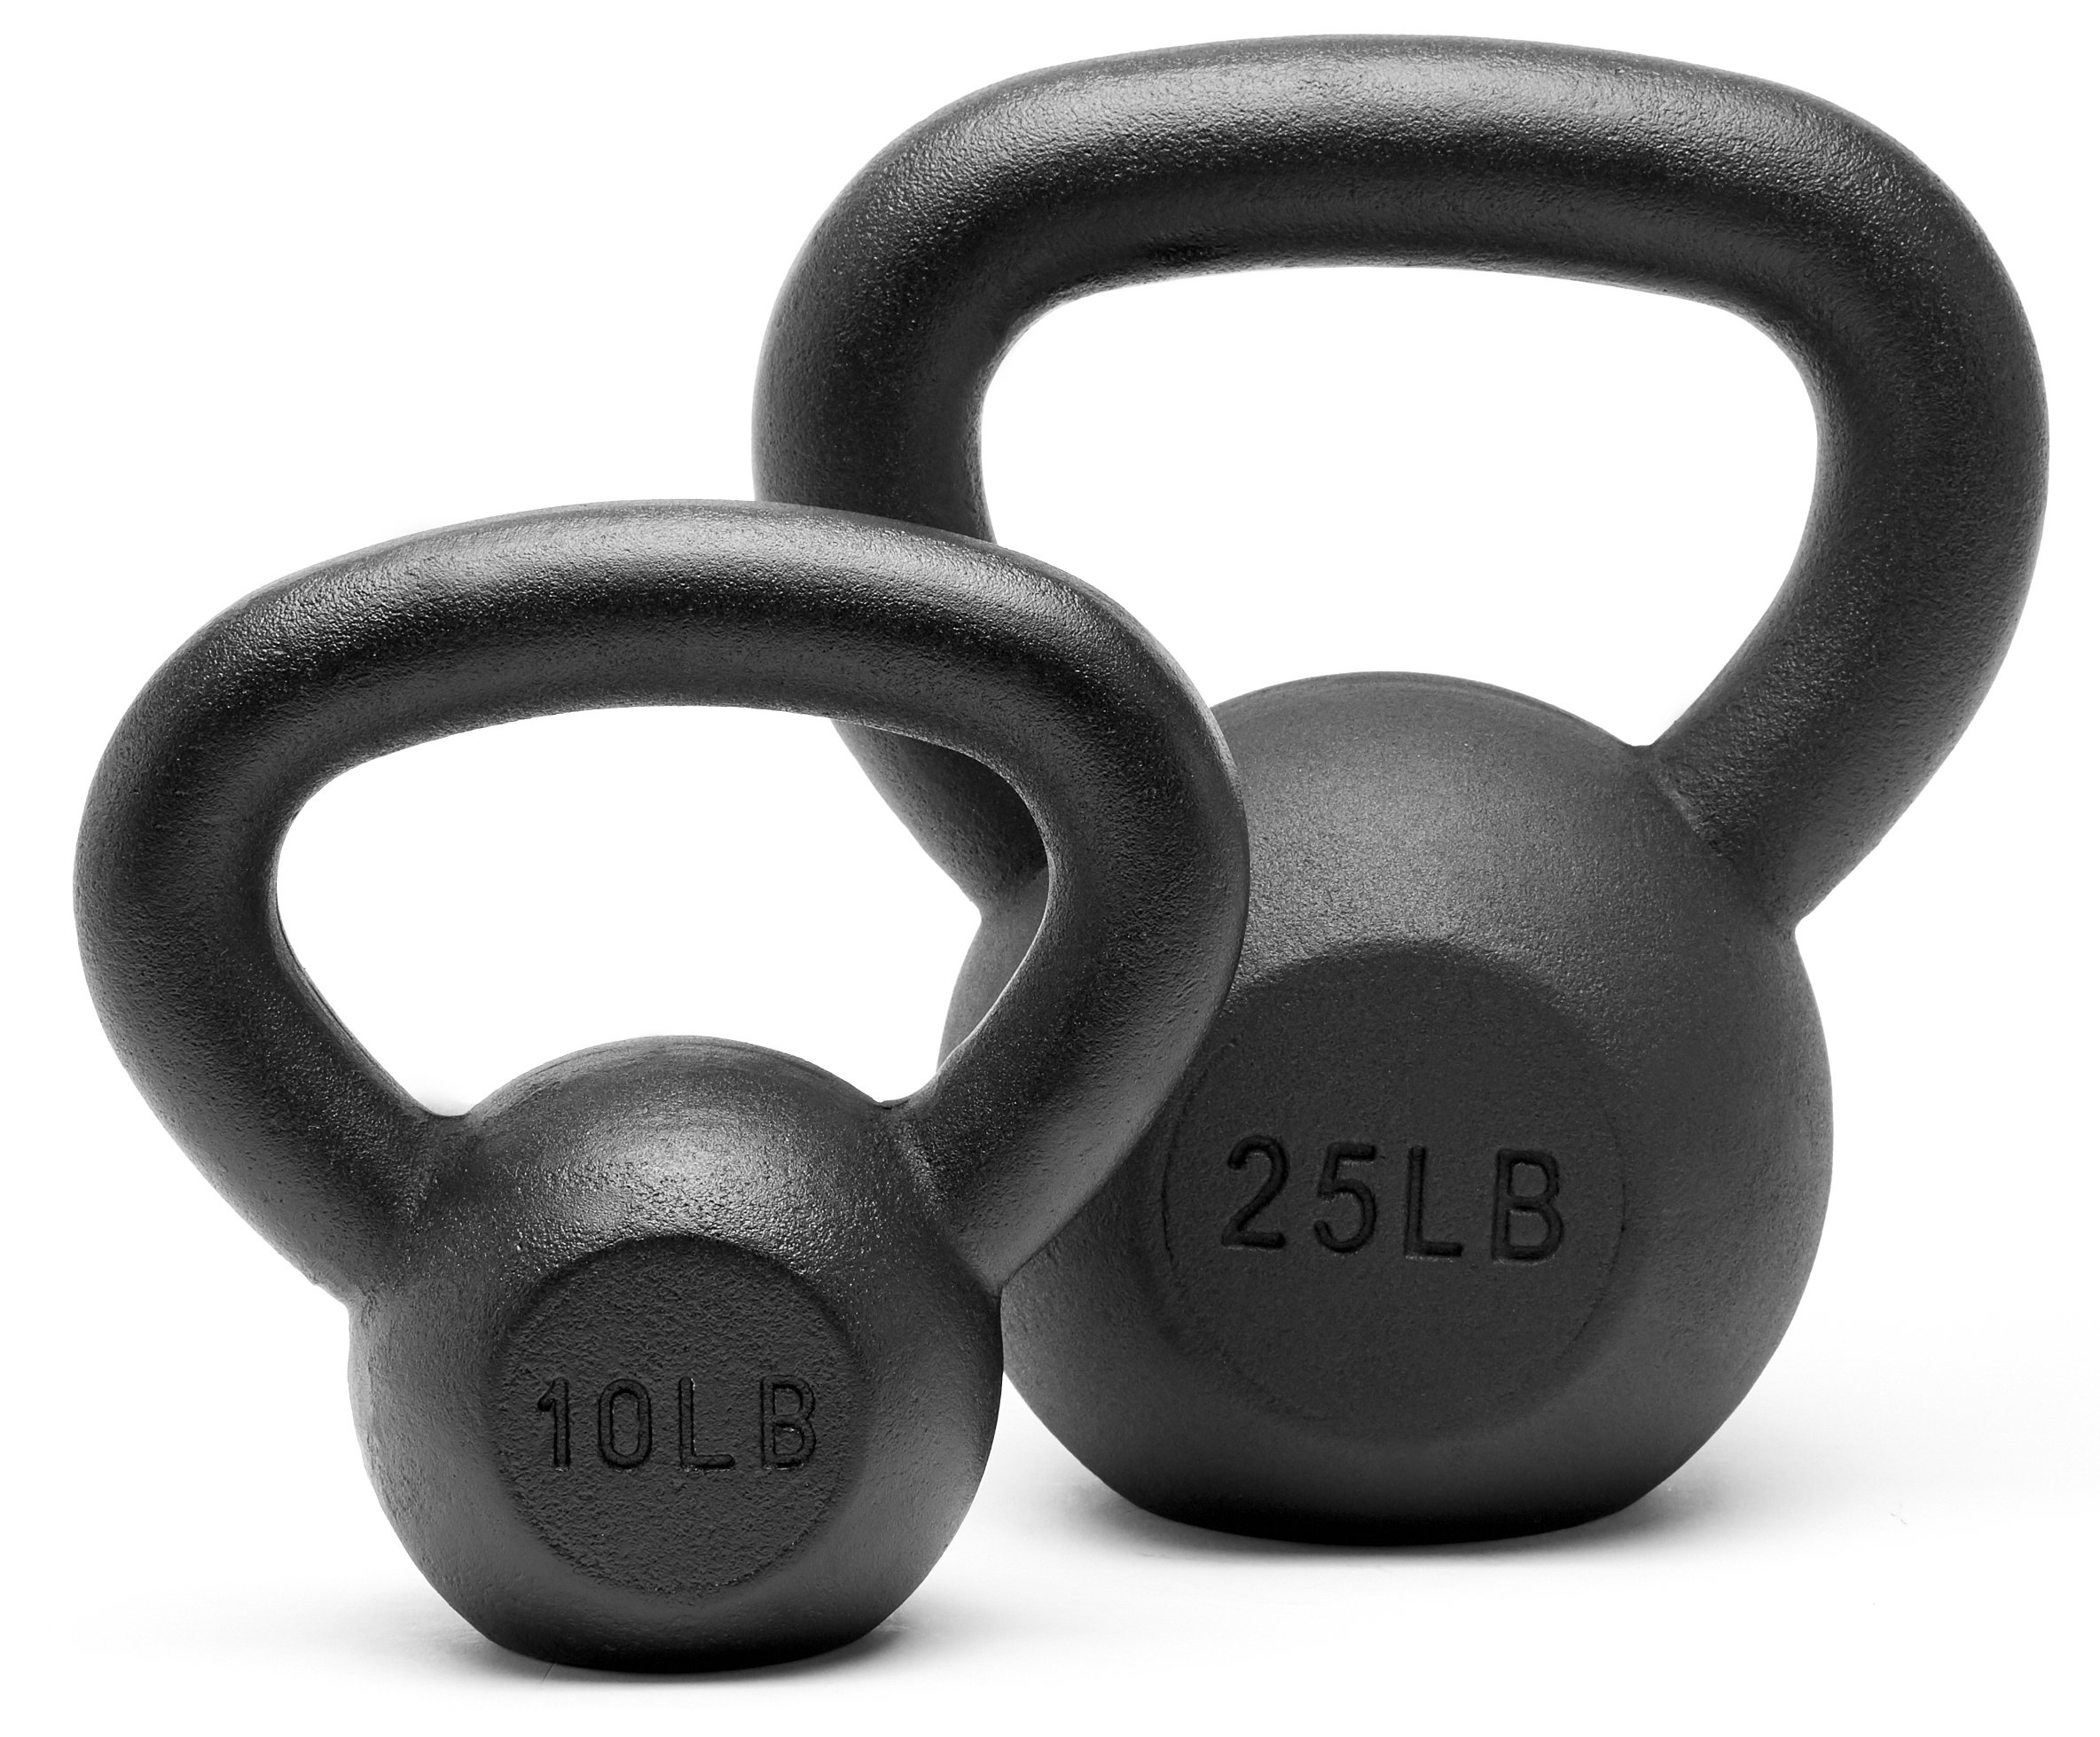 Unipack Powder Coated Solid Cast Iron Kettlebell Weights Set- (10+25lbs)